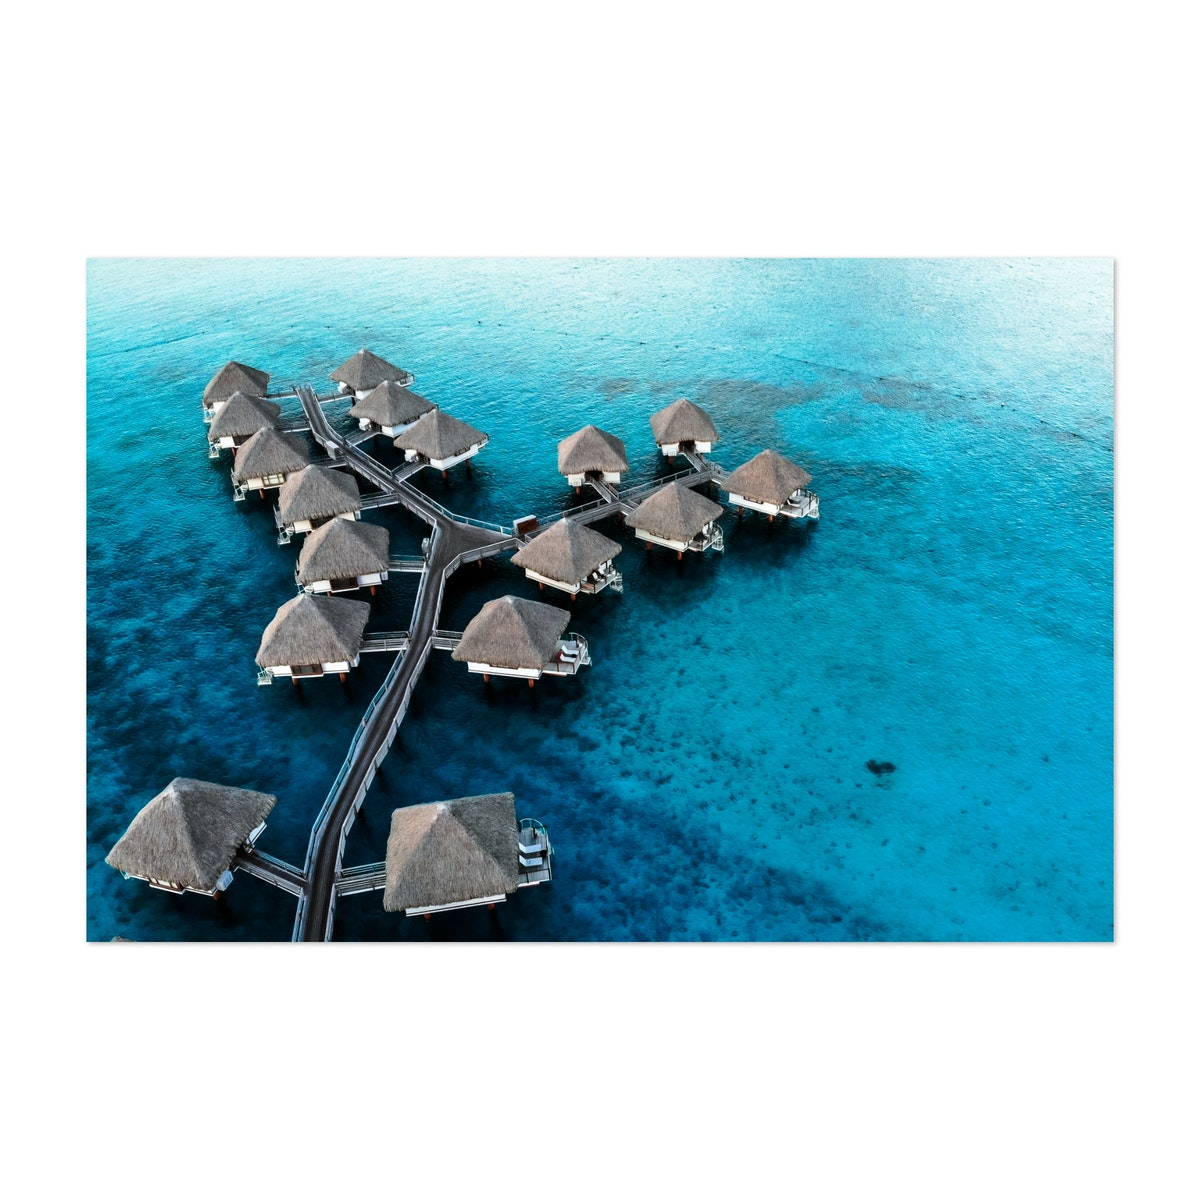 Bora Bora Bungalows from Above